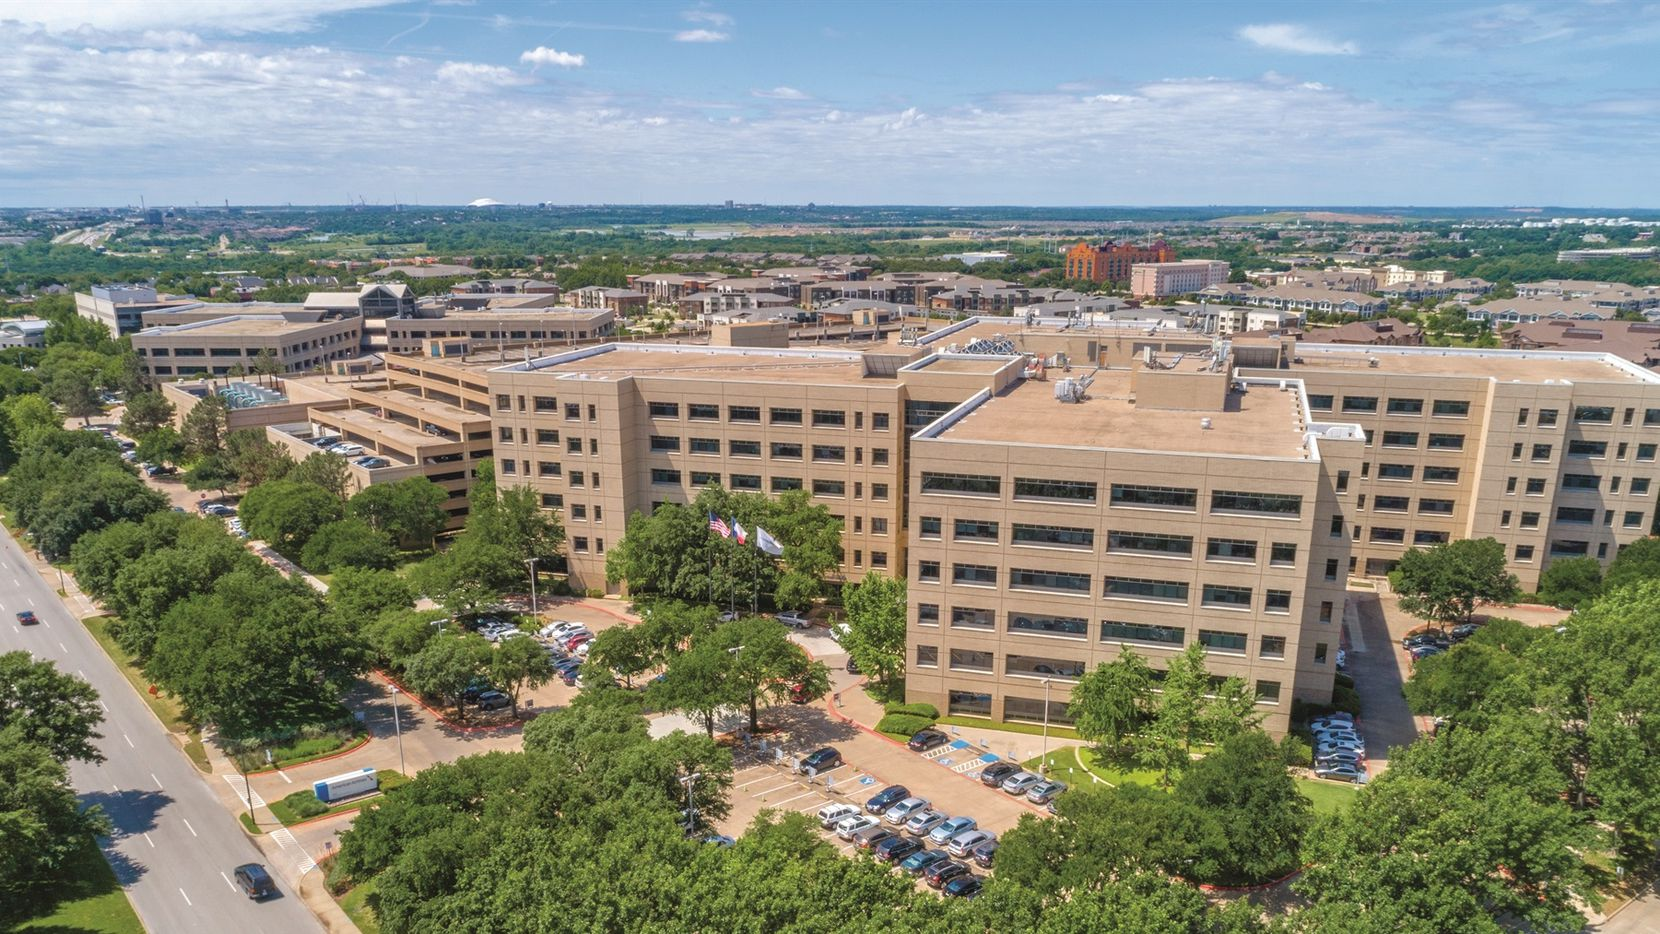 American Airlines old headquarters on the northeast edge of Fort Worth has almost 1.4 million square feet.